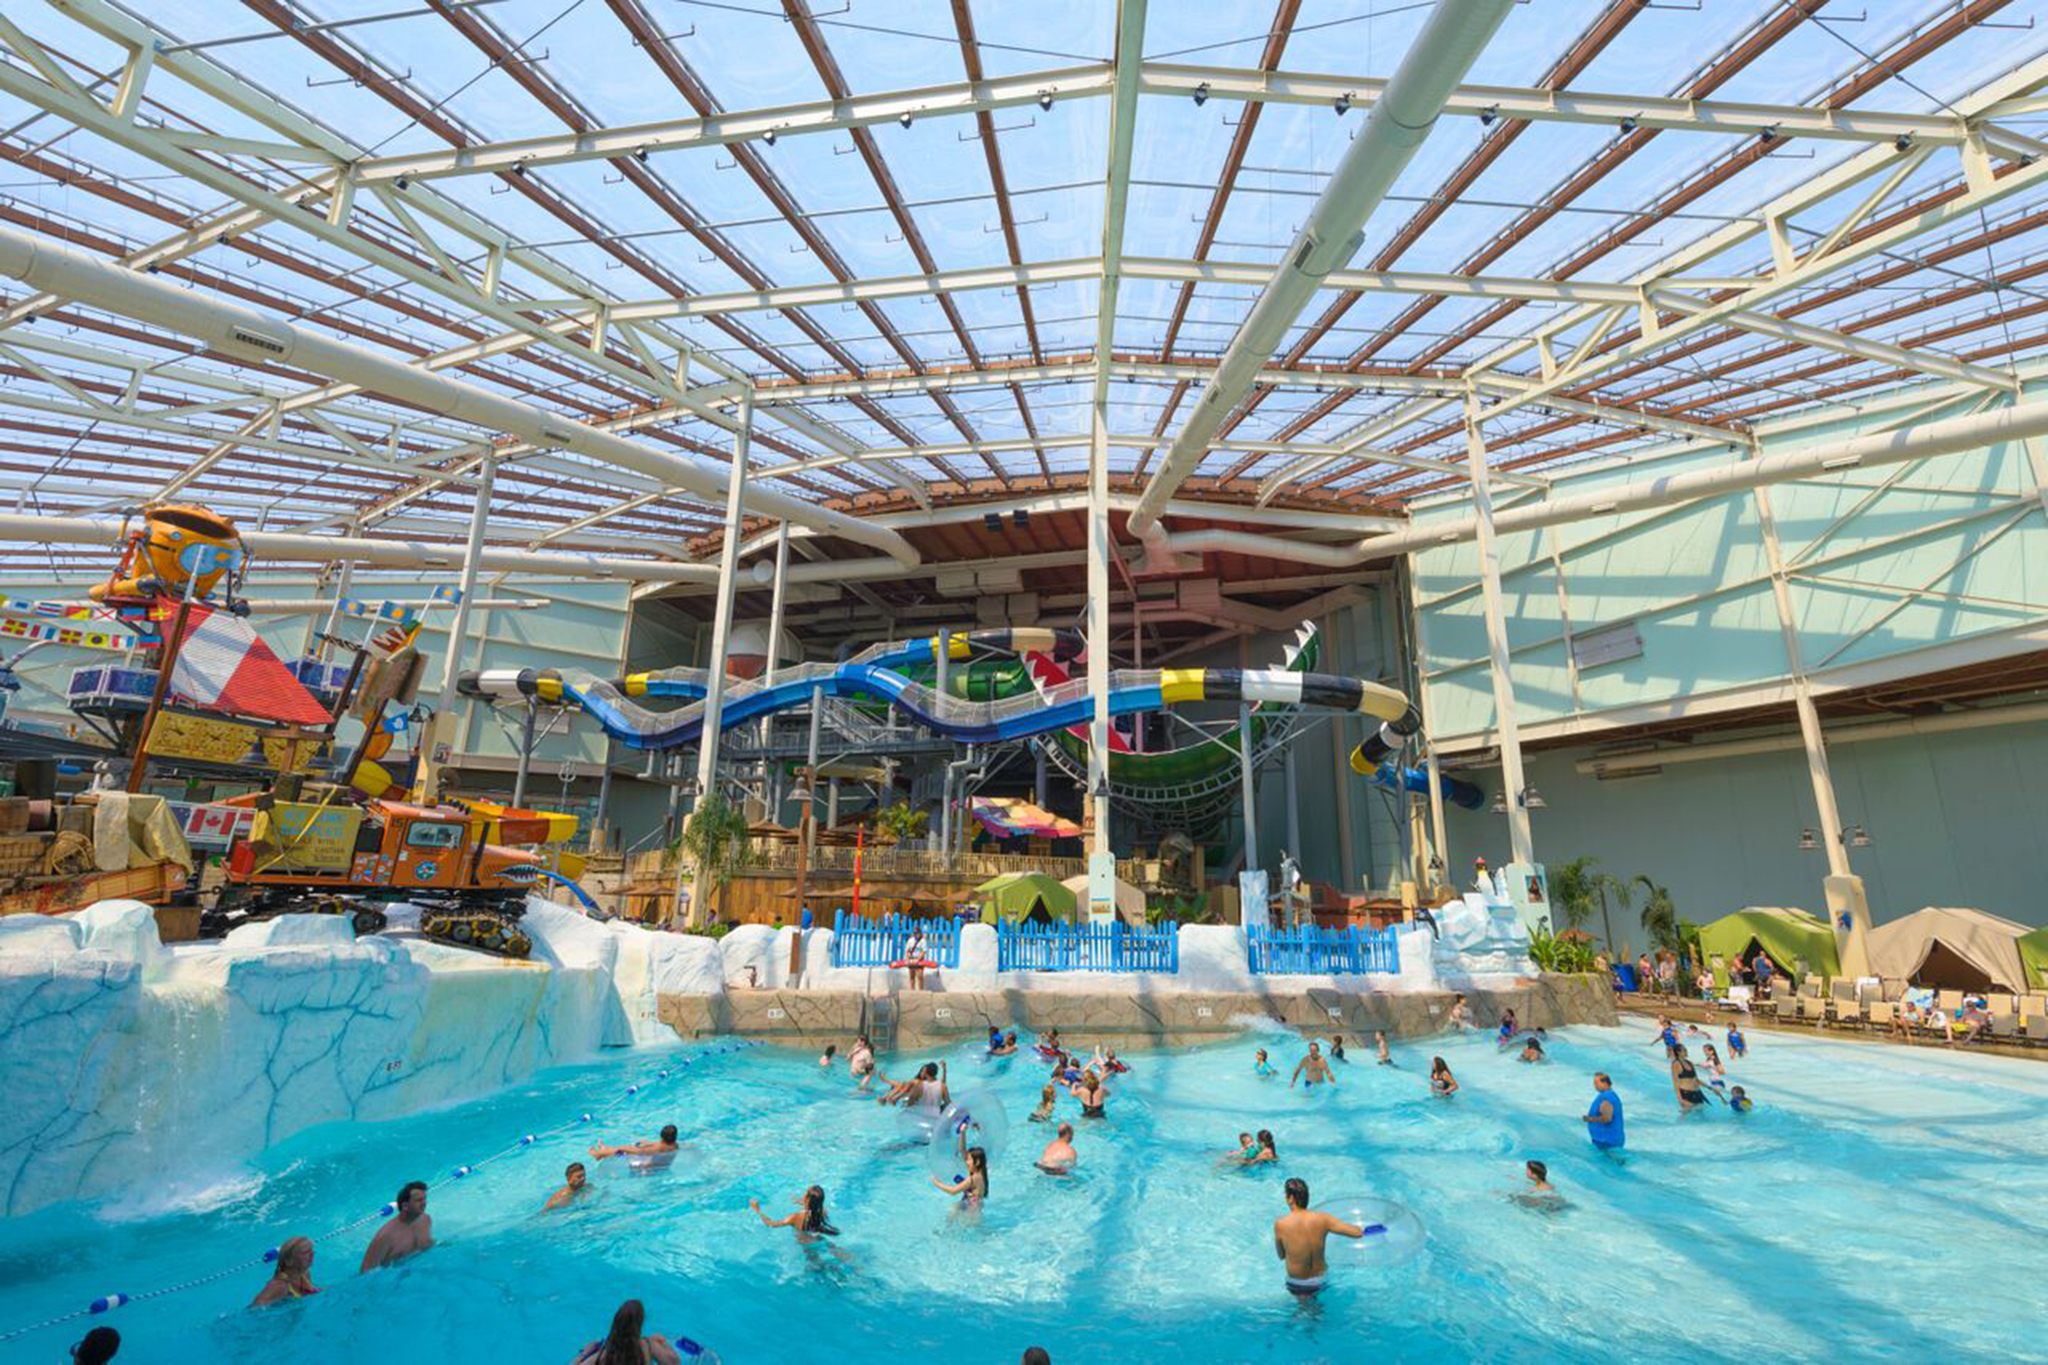 Indoor Swimming Pool With Slides best indoor water parks near new york city for families